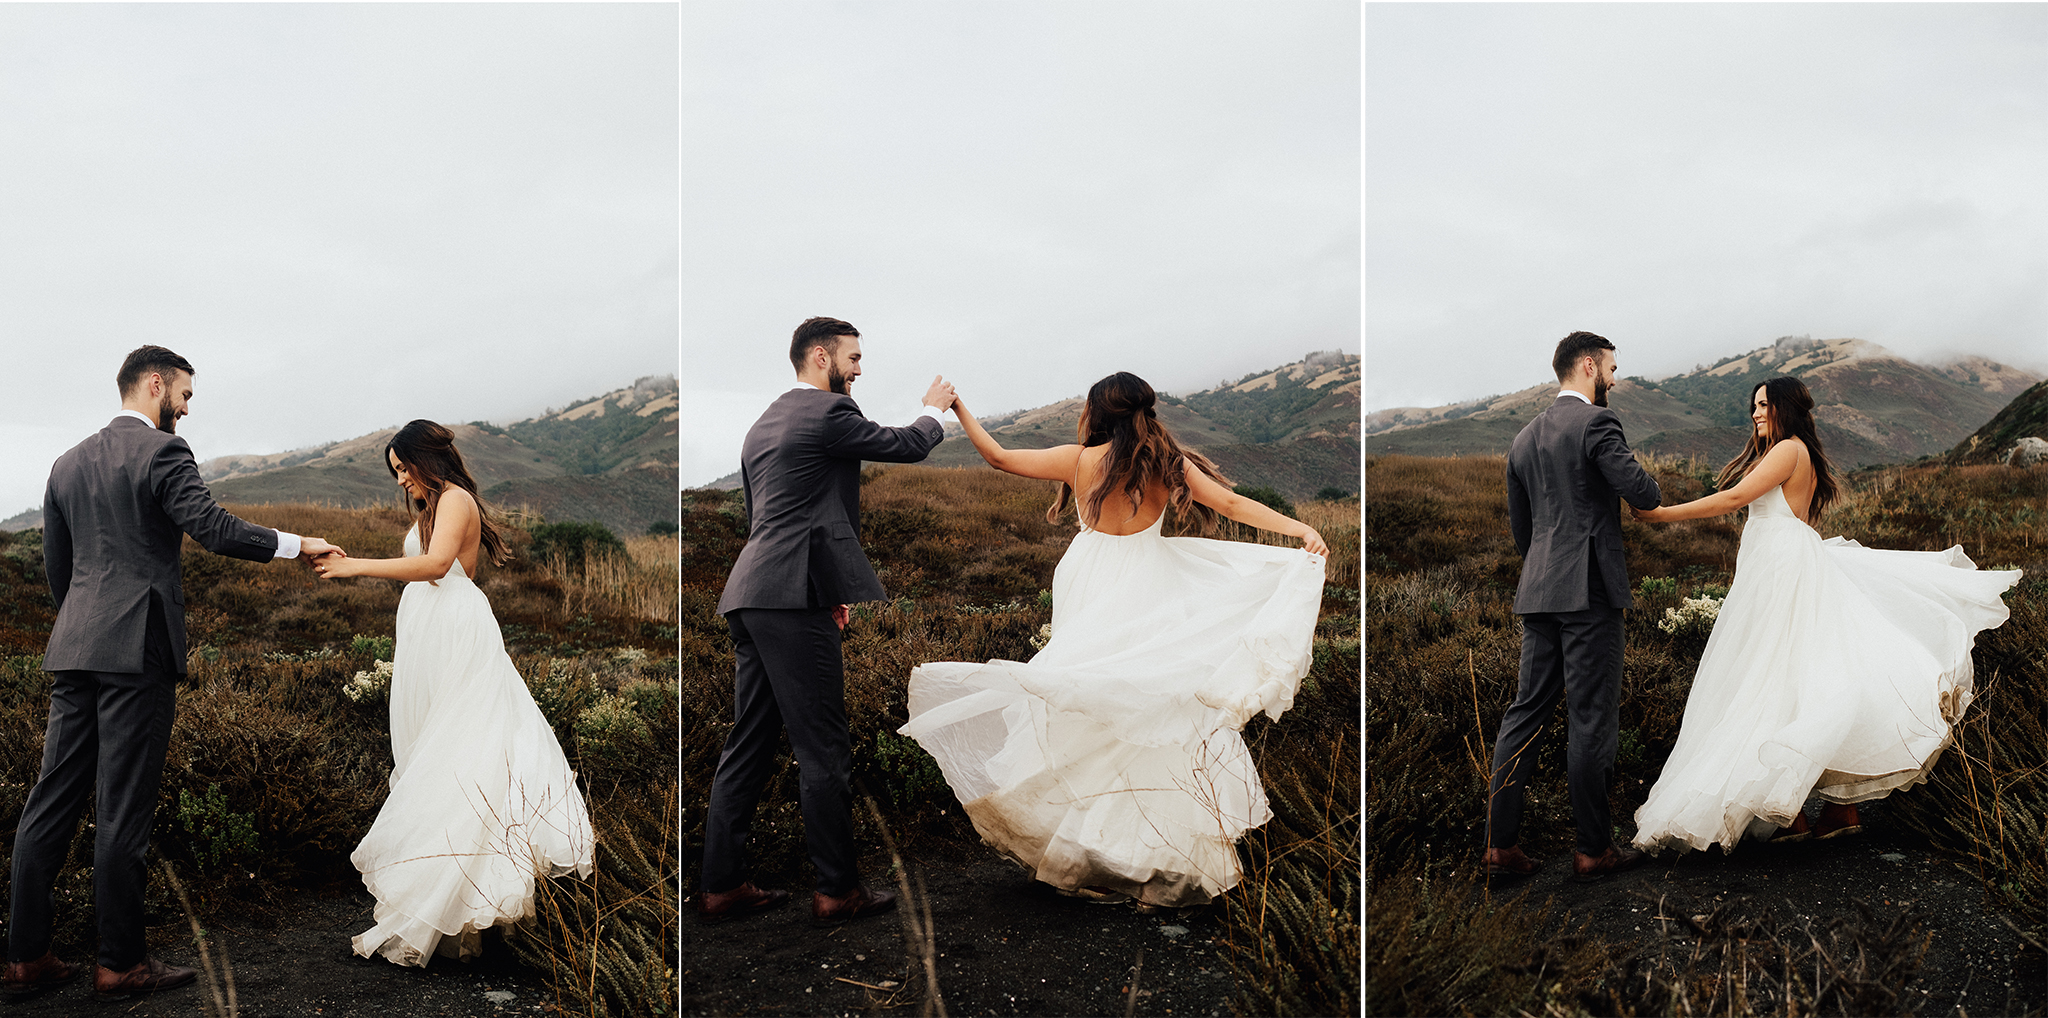 Big-Sur-National-Park-Elopement-Intimate-Wedding-Photographer (41).jpg